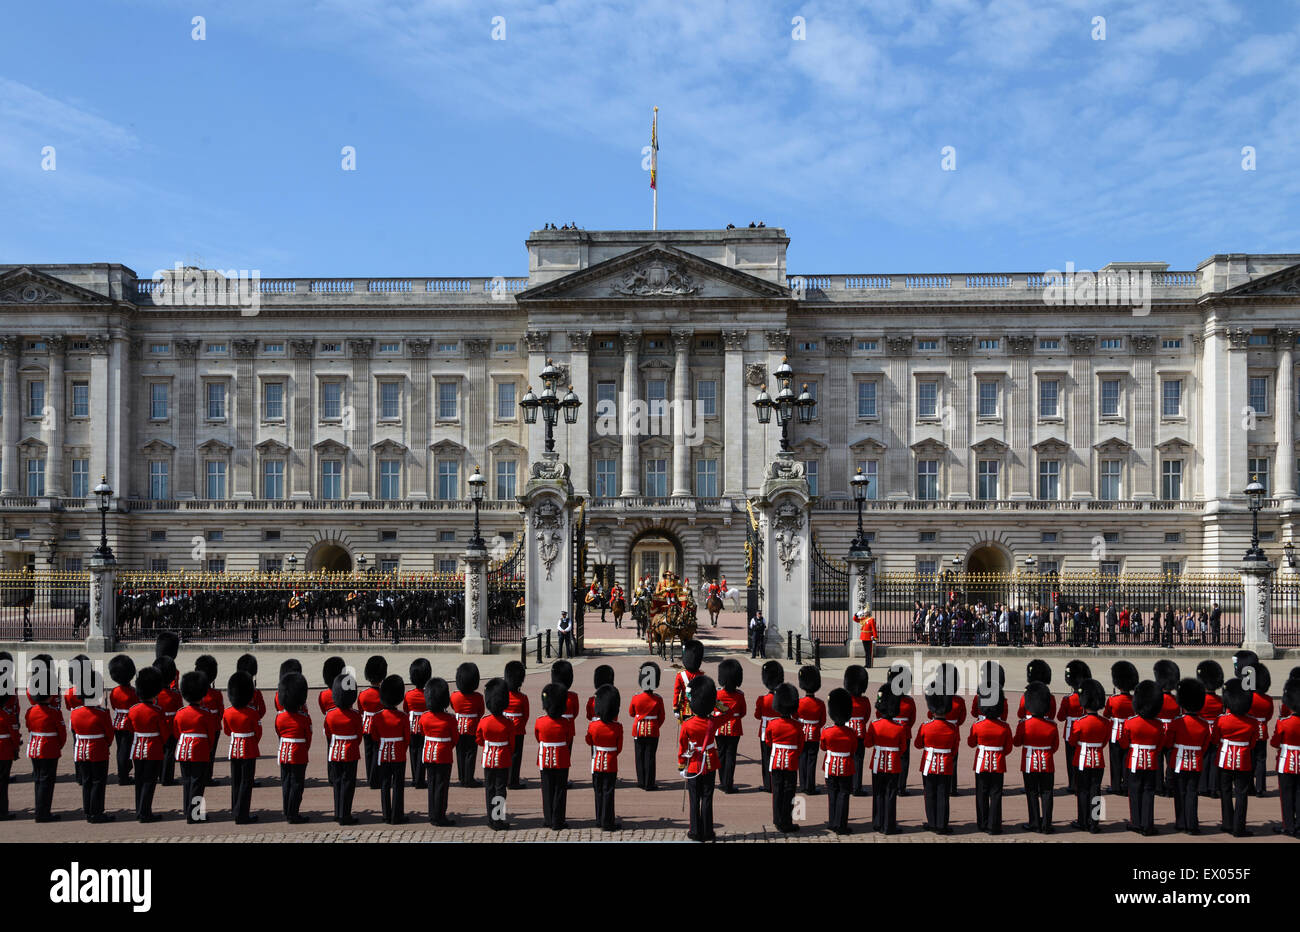 State Opening of Parliament on 27/05/2015 at Buckingham Palace, London. xxxxx.  Picture by Julie Edwards - Stock Image